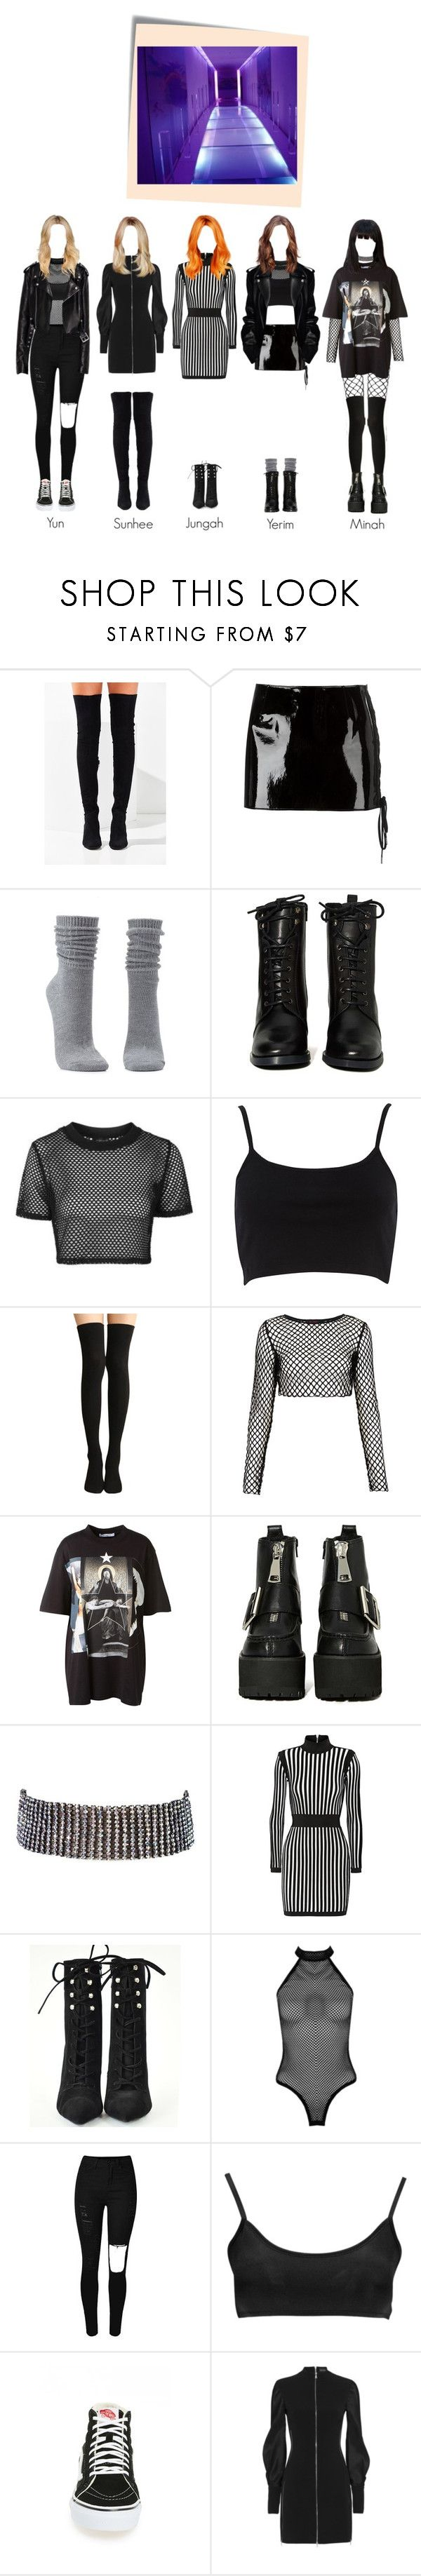 """""""SOLAR ( COMEBACK ) - I WANT YOU """" MV """""""" by solarofficial ❤ liked on Polyvore featuring Jeffrey Campbell, Anthony Vaccarello, Charlotte Russe, Report, Topshop, River Island, Motel, Givenchy, Amrita Singh and Balmain"""